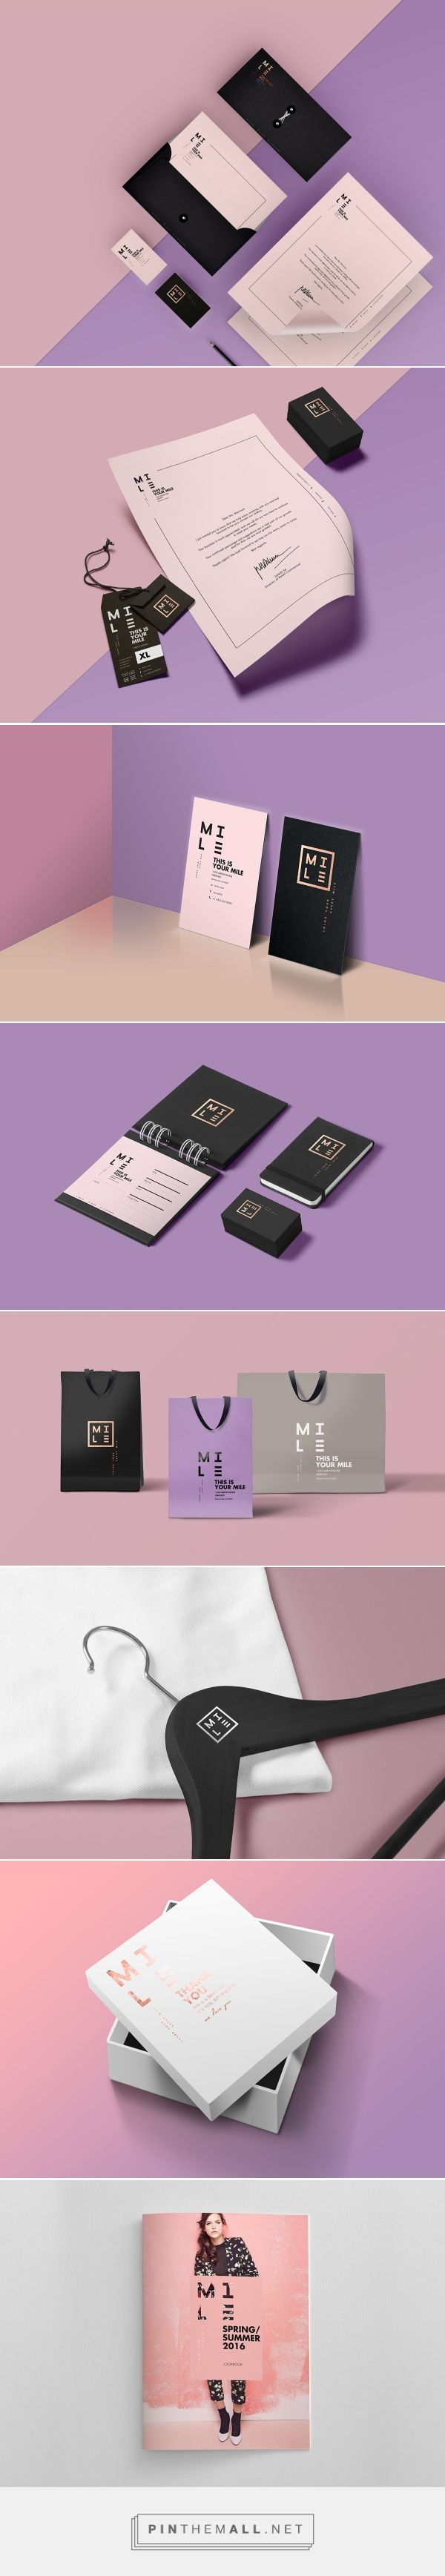 MILE -  Fashion Brand Identity